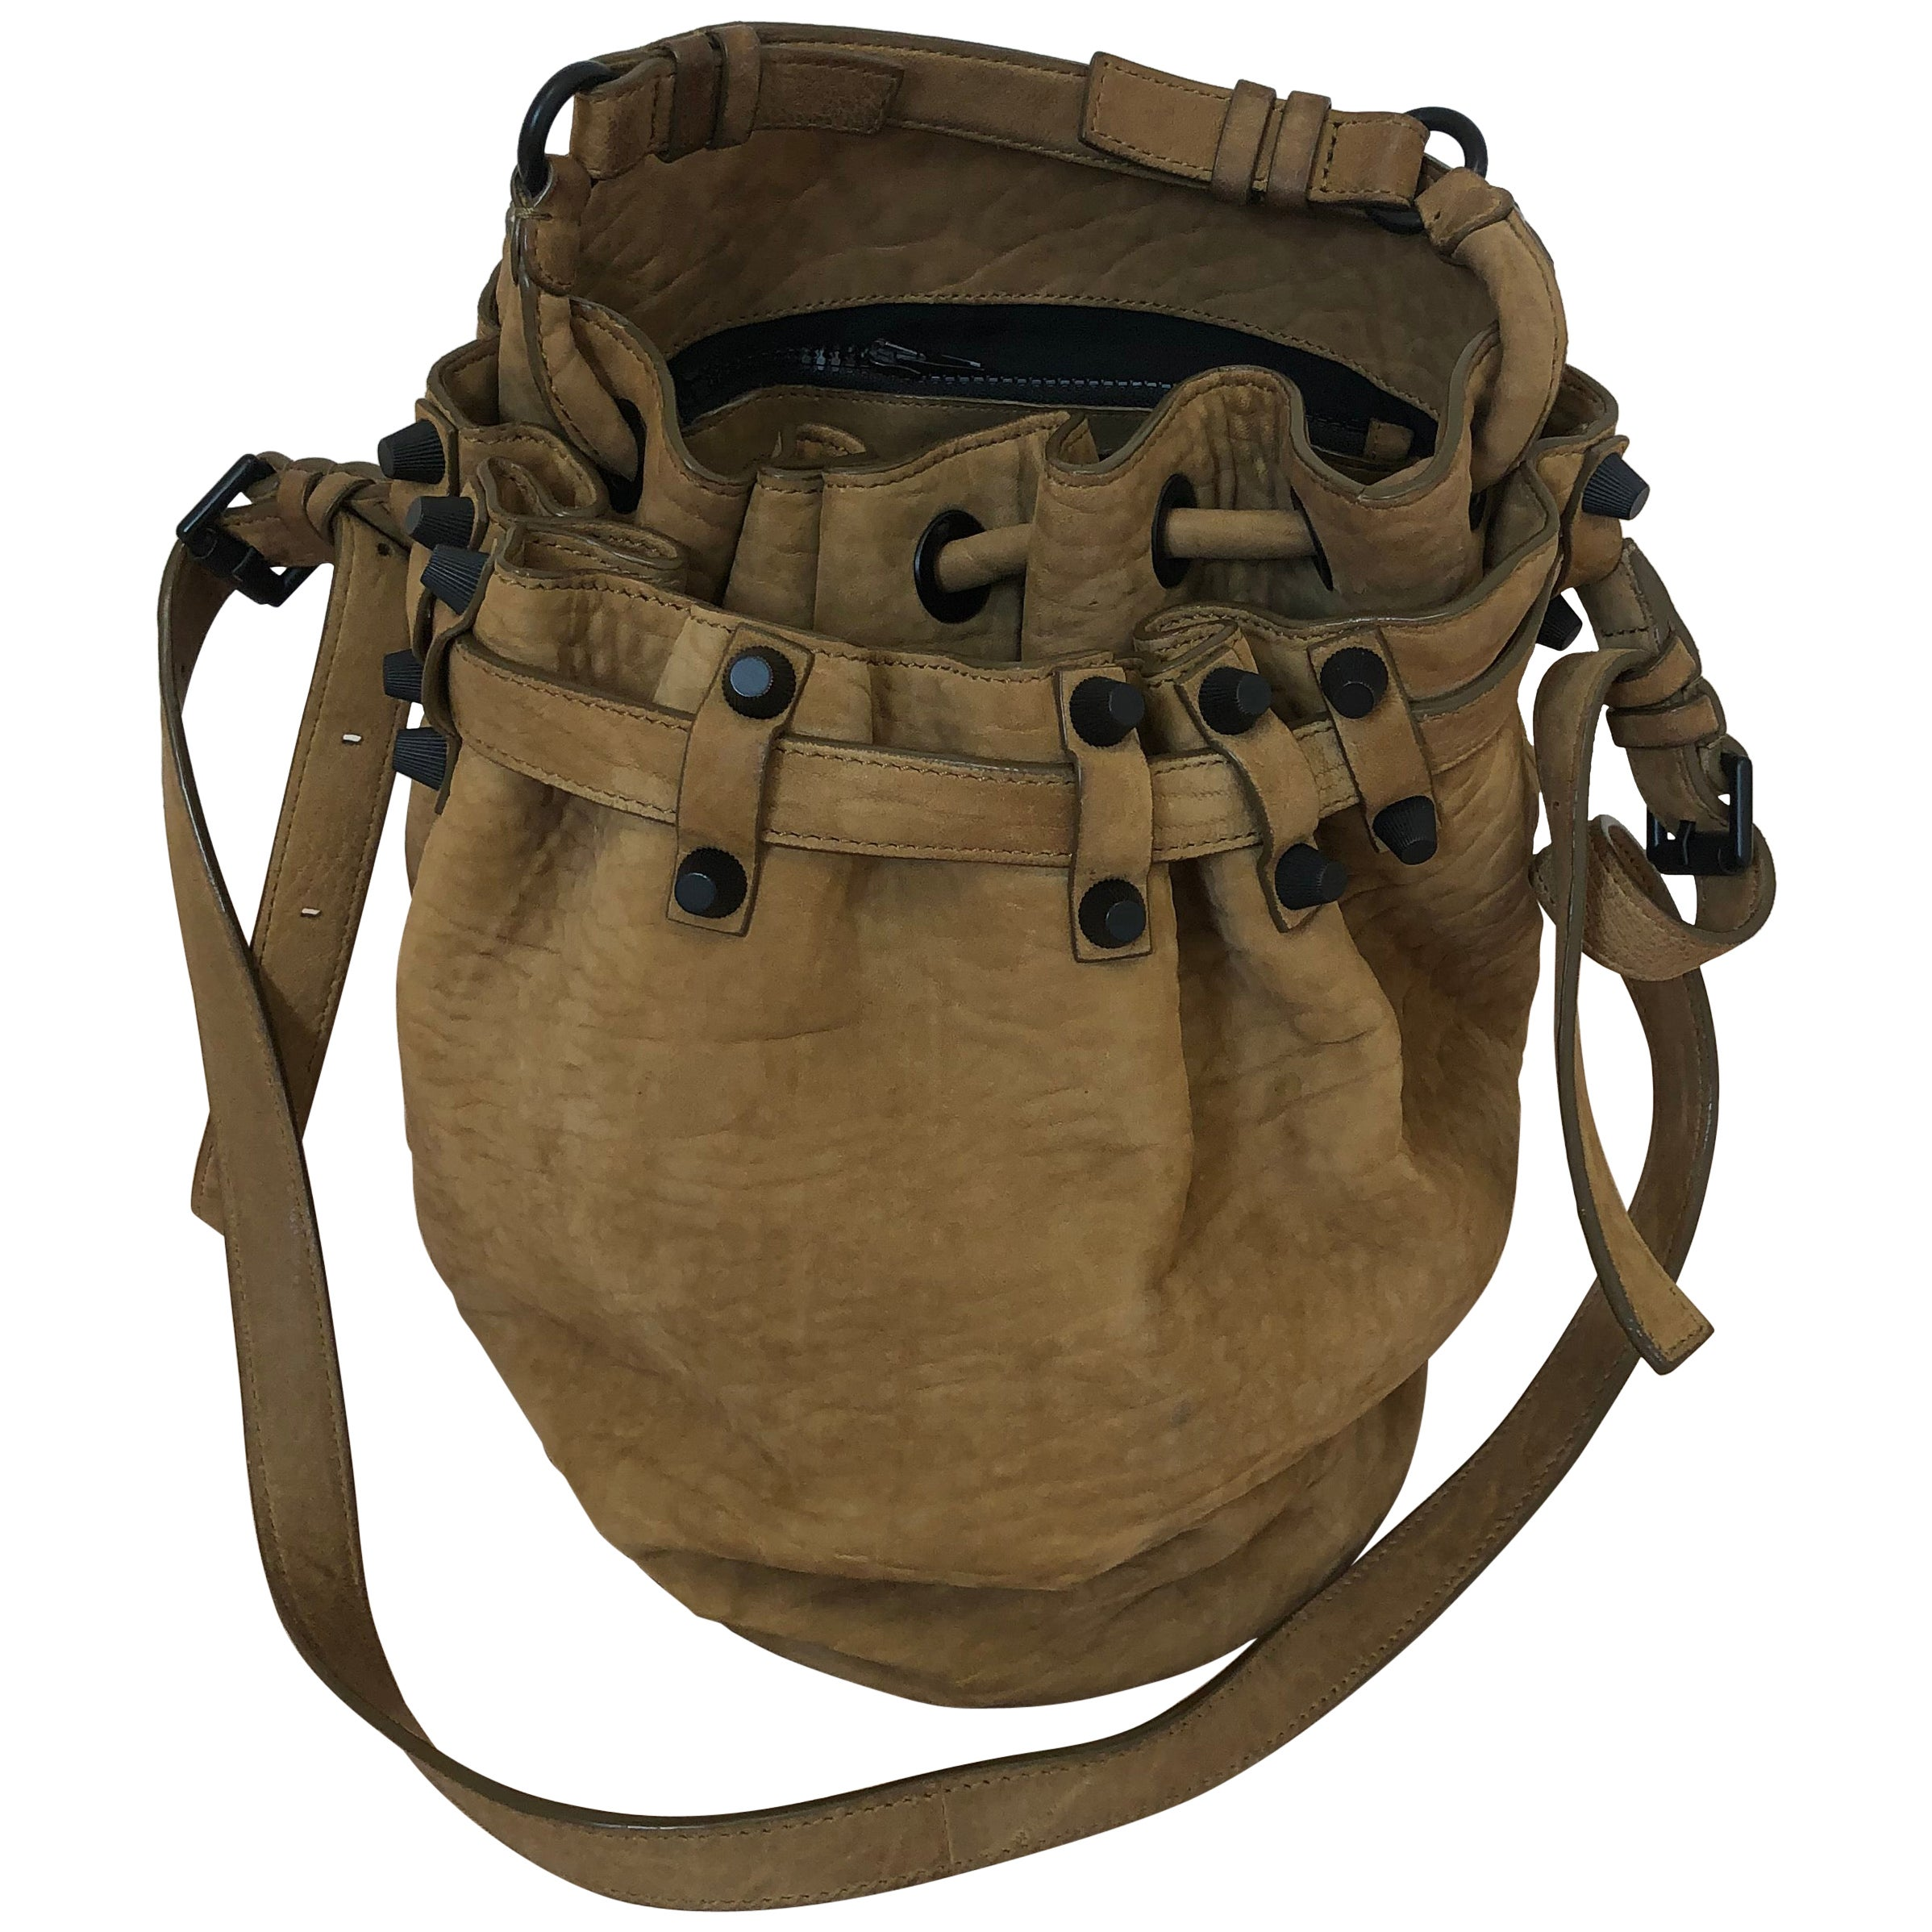 "Alexander Wang ""Diego"" Suede Studded Bucket Bag in Taupe/Camel w/Dust Bag"